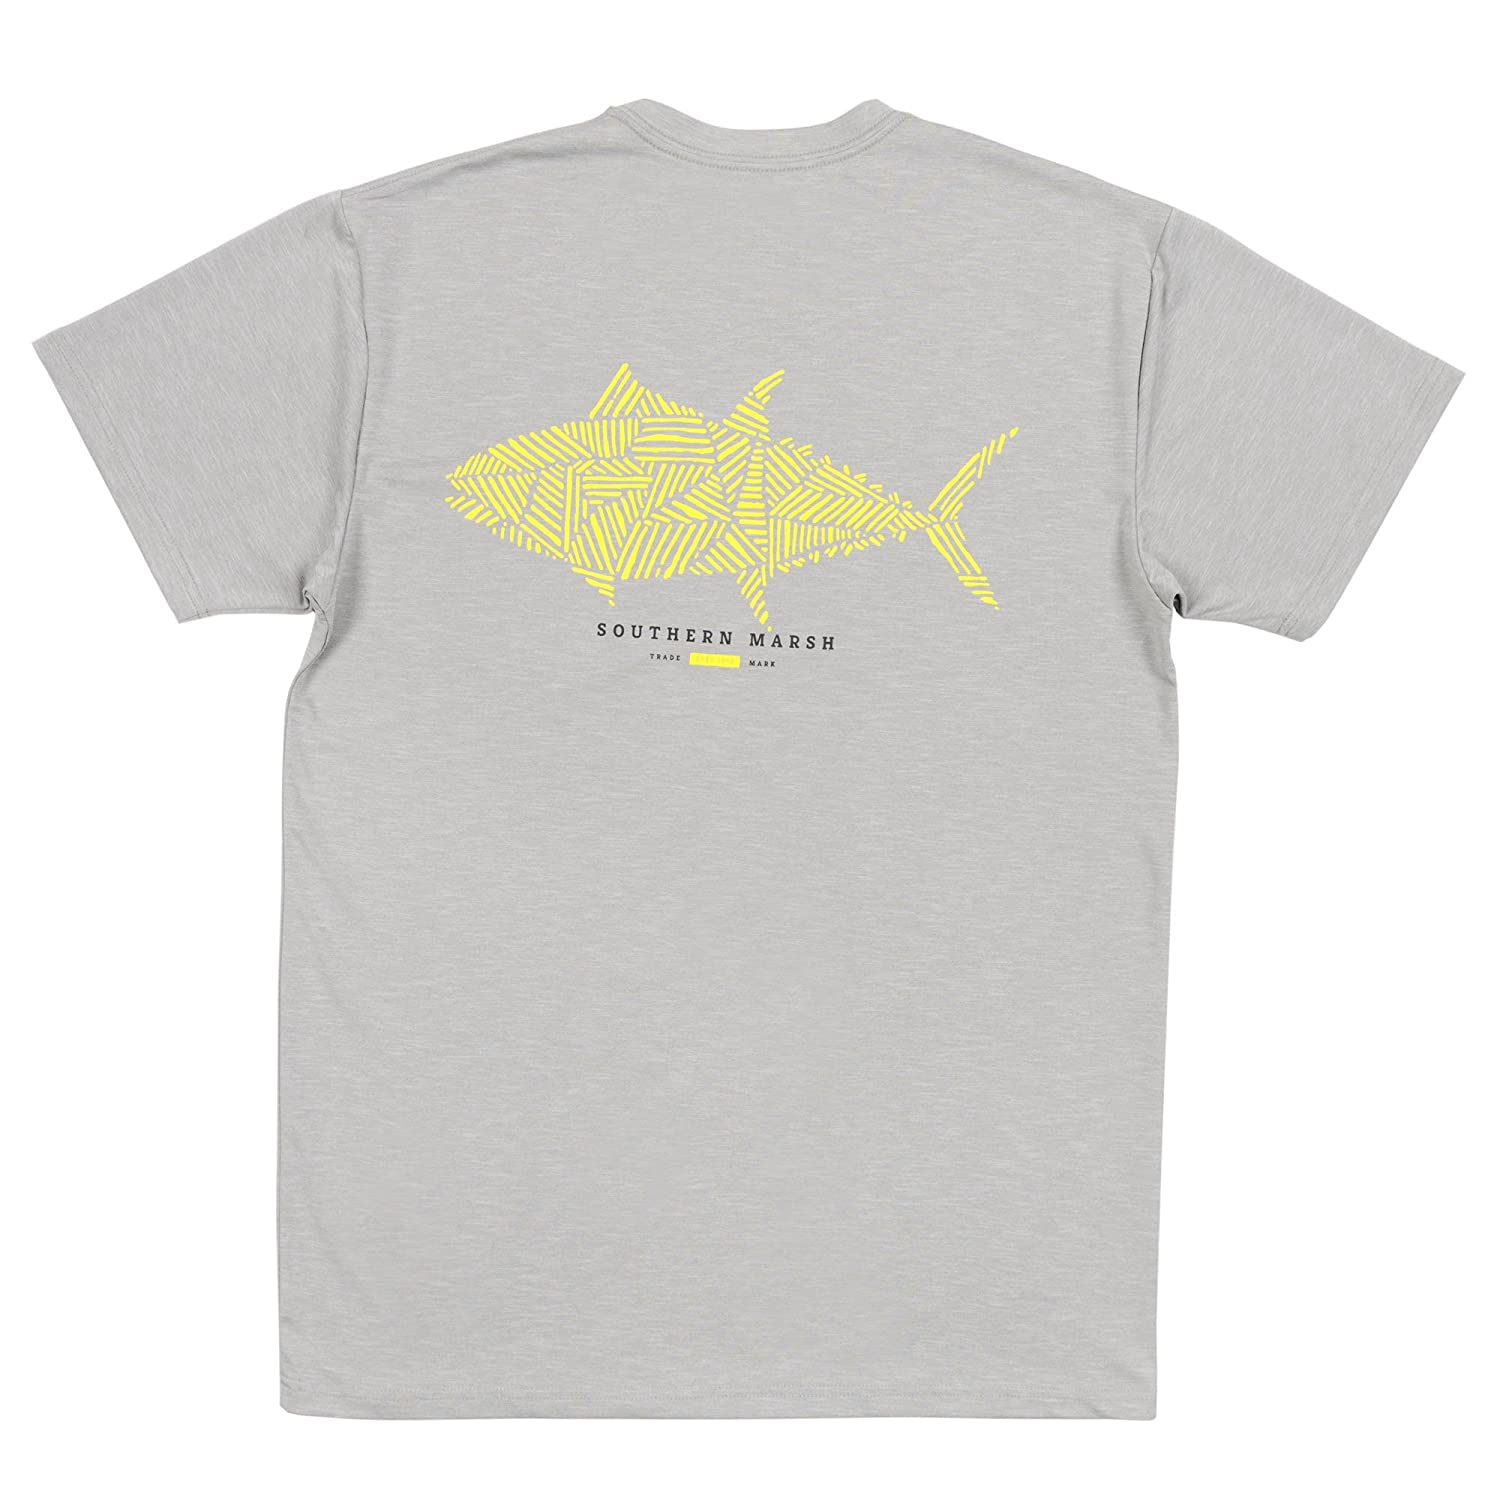 Tuna Southern Marsh FieldTec Heathered Performance Tee